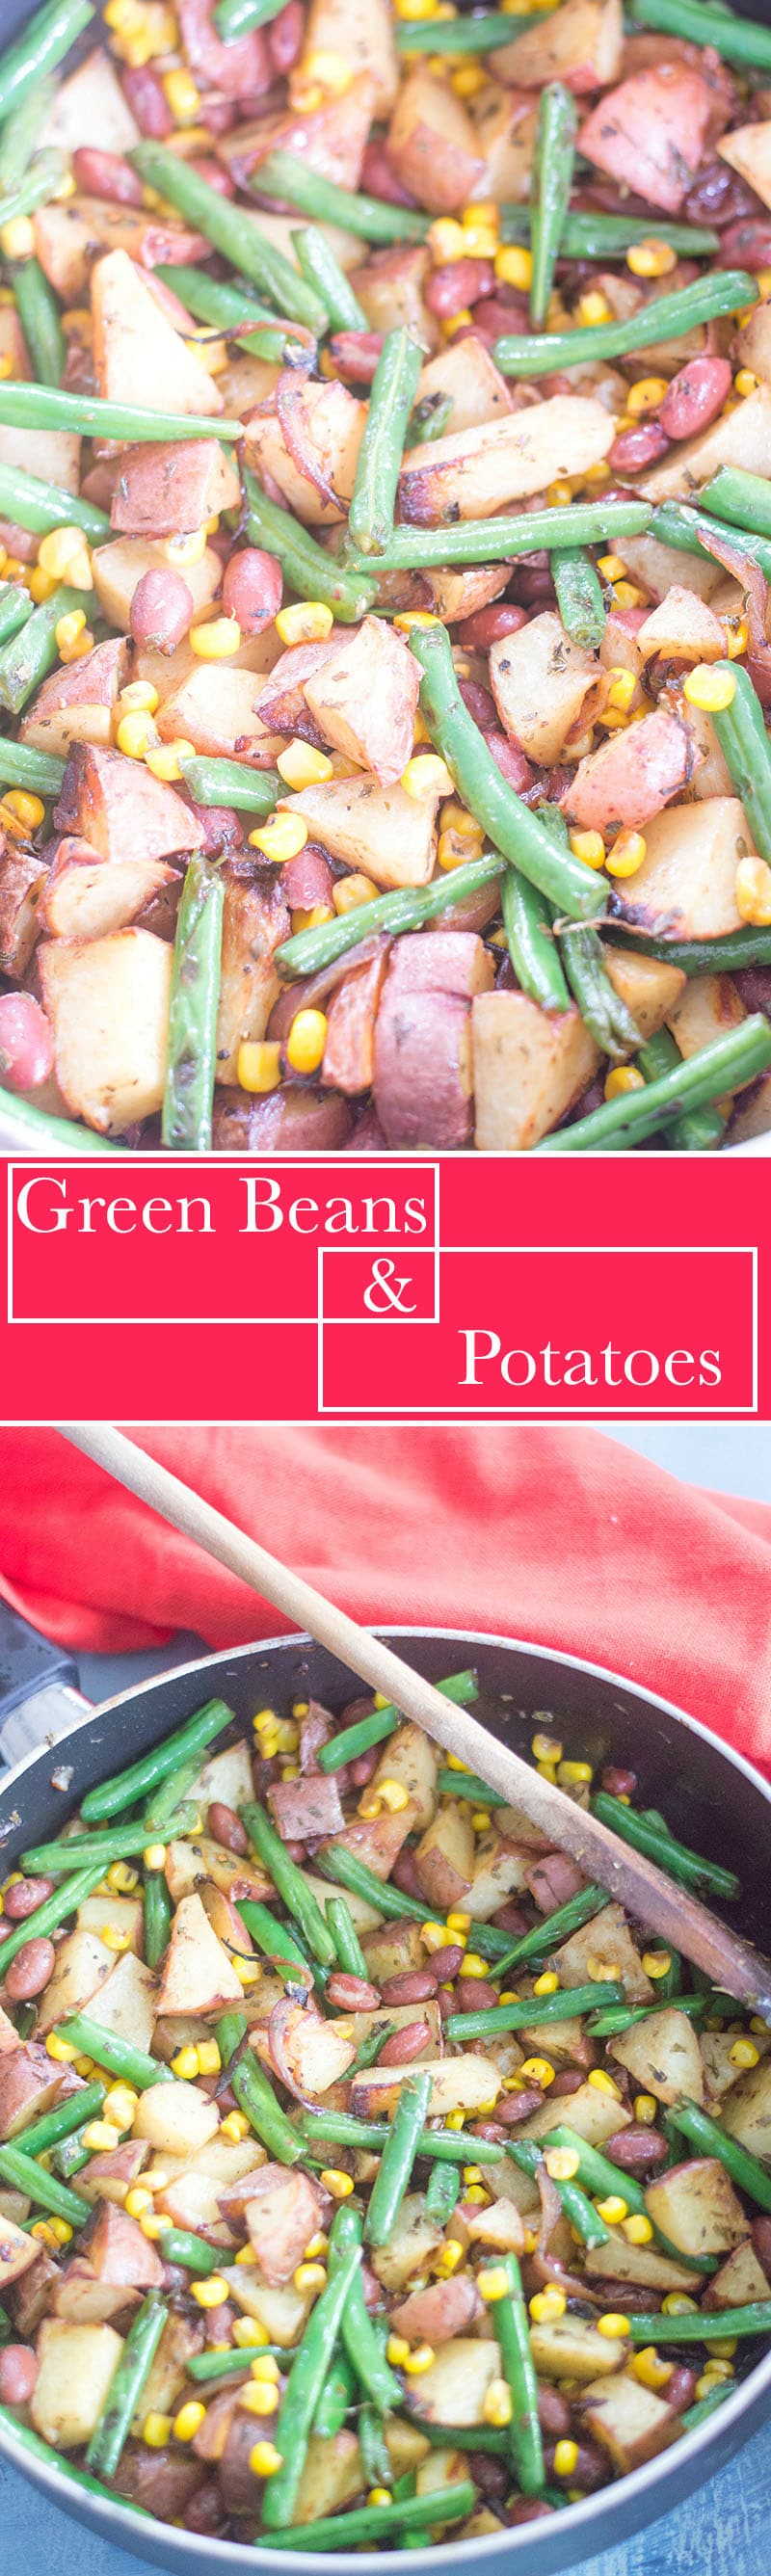 Simple green beans and potatoes recipe made with simple spices. Side dish or perfect lunch meal for vegans, vegetarians and omnivores. Takes 30 min or less